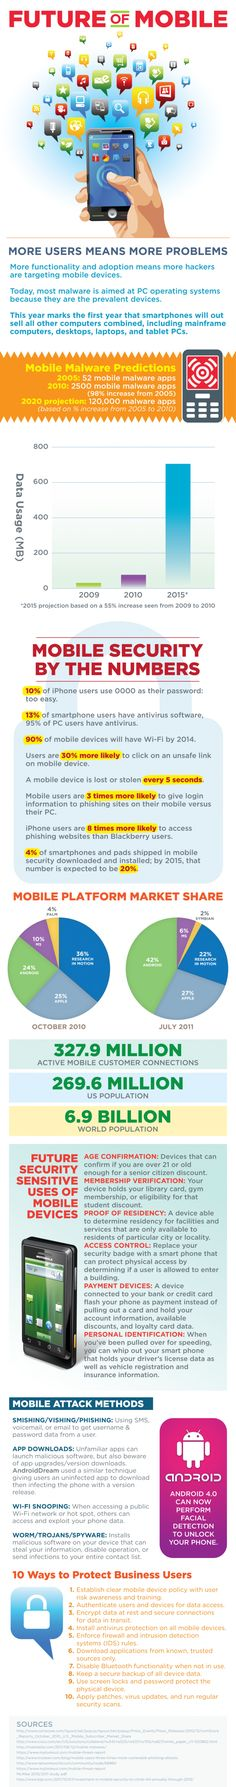 Future of Mobile: Mobile Security and  Smishing/Vishing. The Rise Of Mobile Computing #mobiletechnology